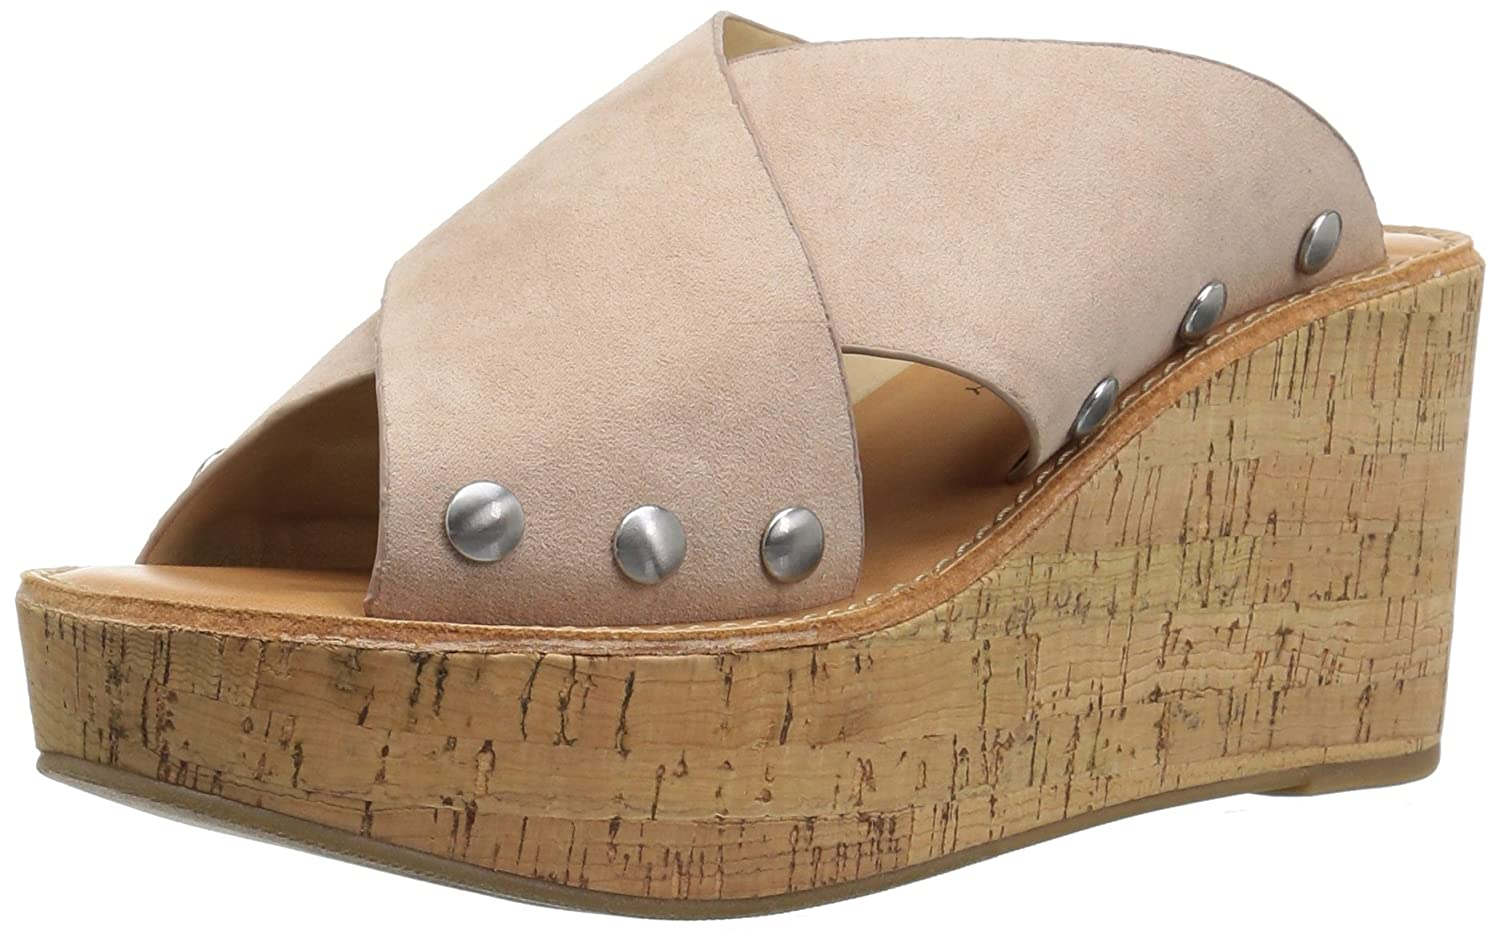 Chinese Laundry Women's Oahu Wedge Sandal B076926V6N 5 B(M) US|Vintage Rose Suede